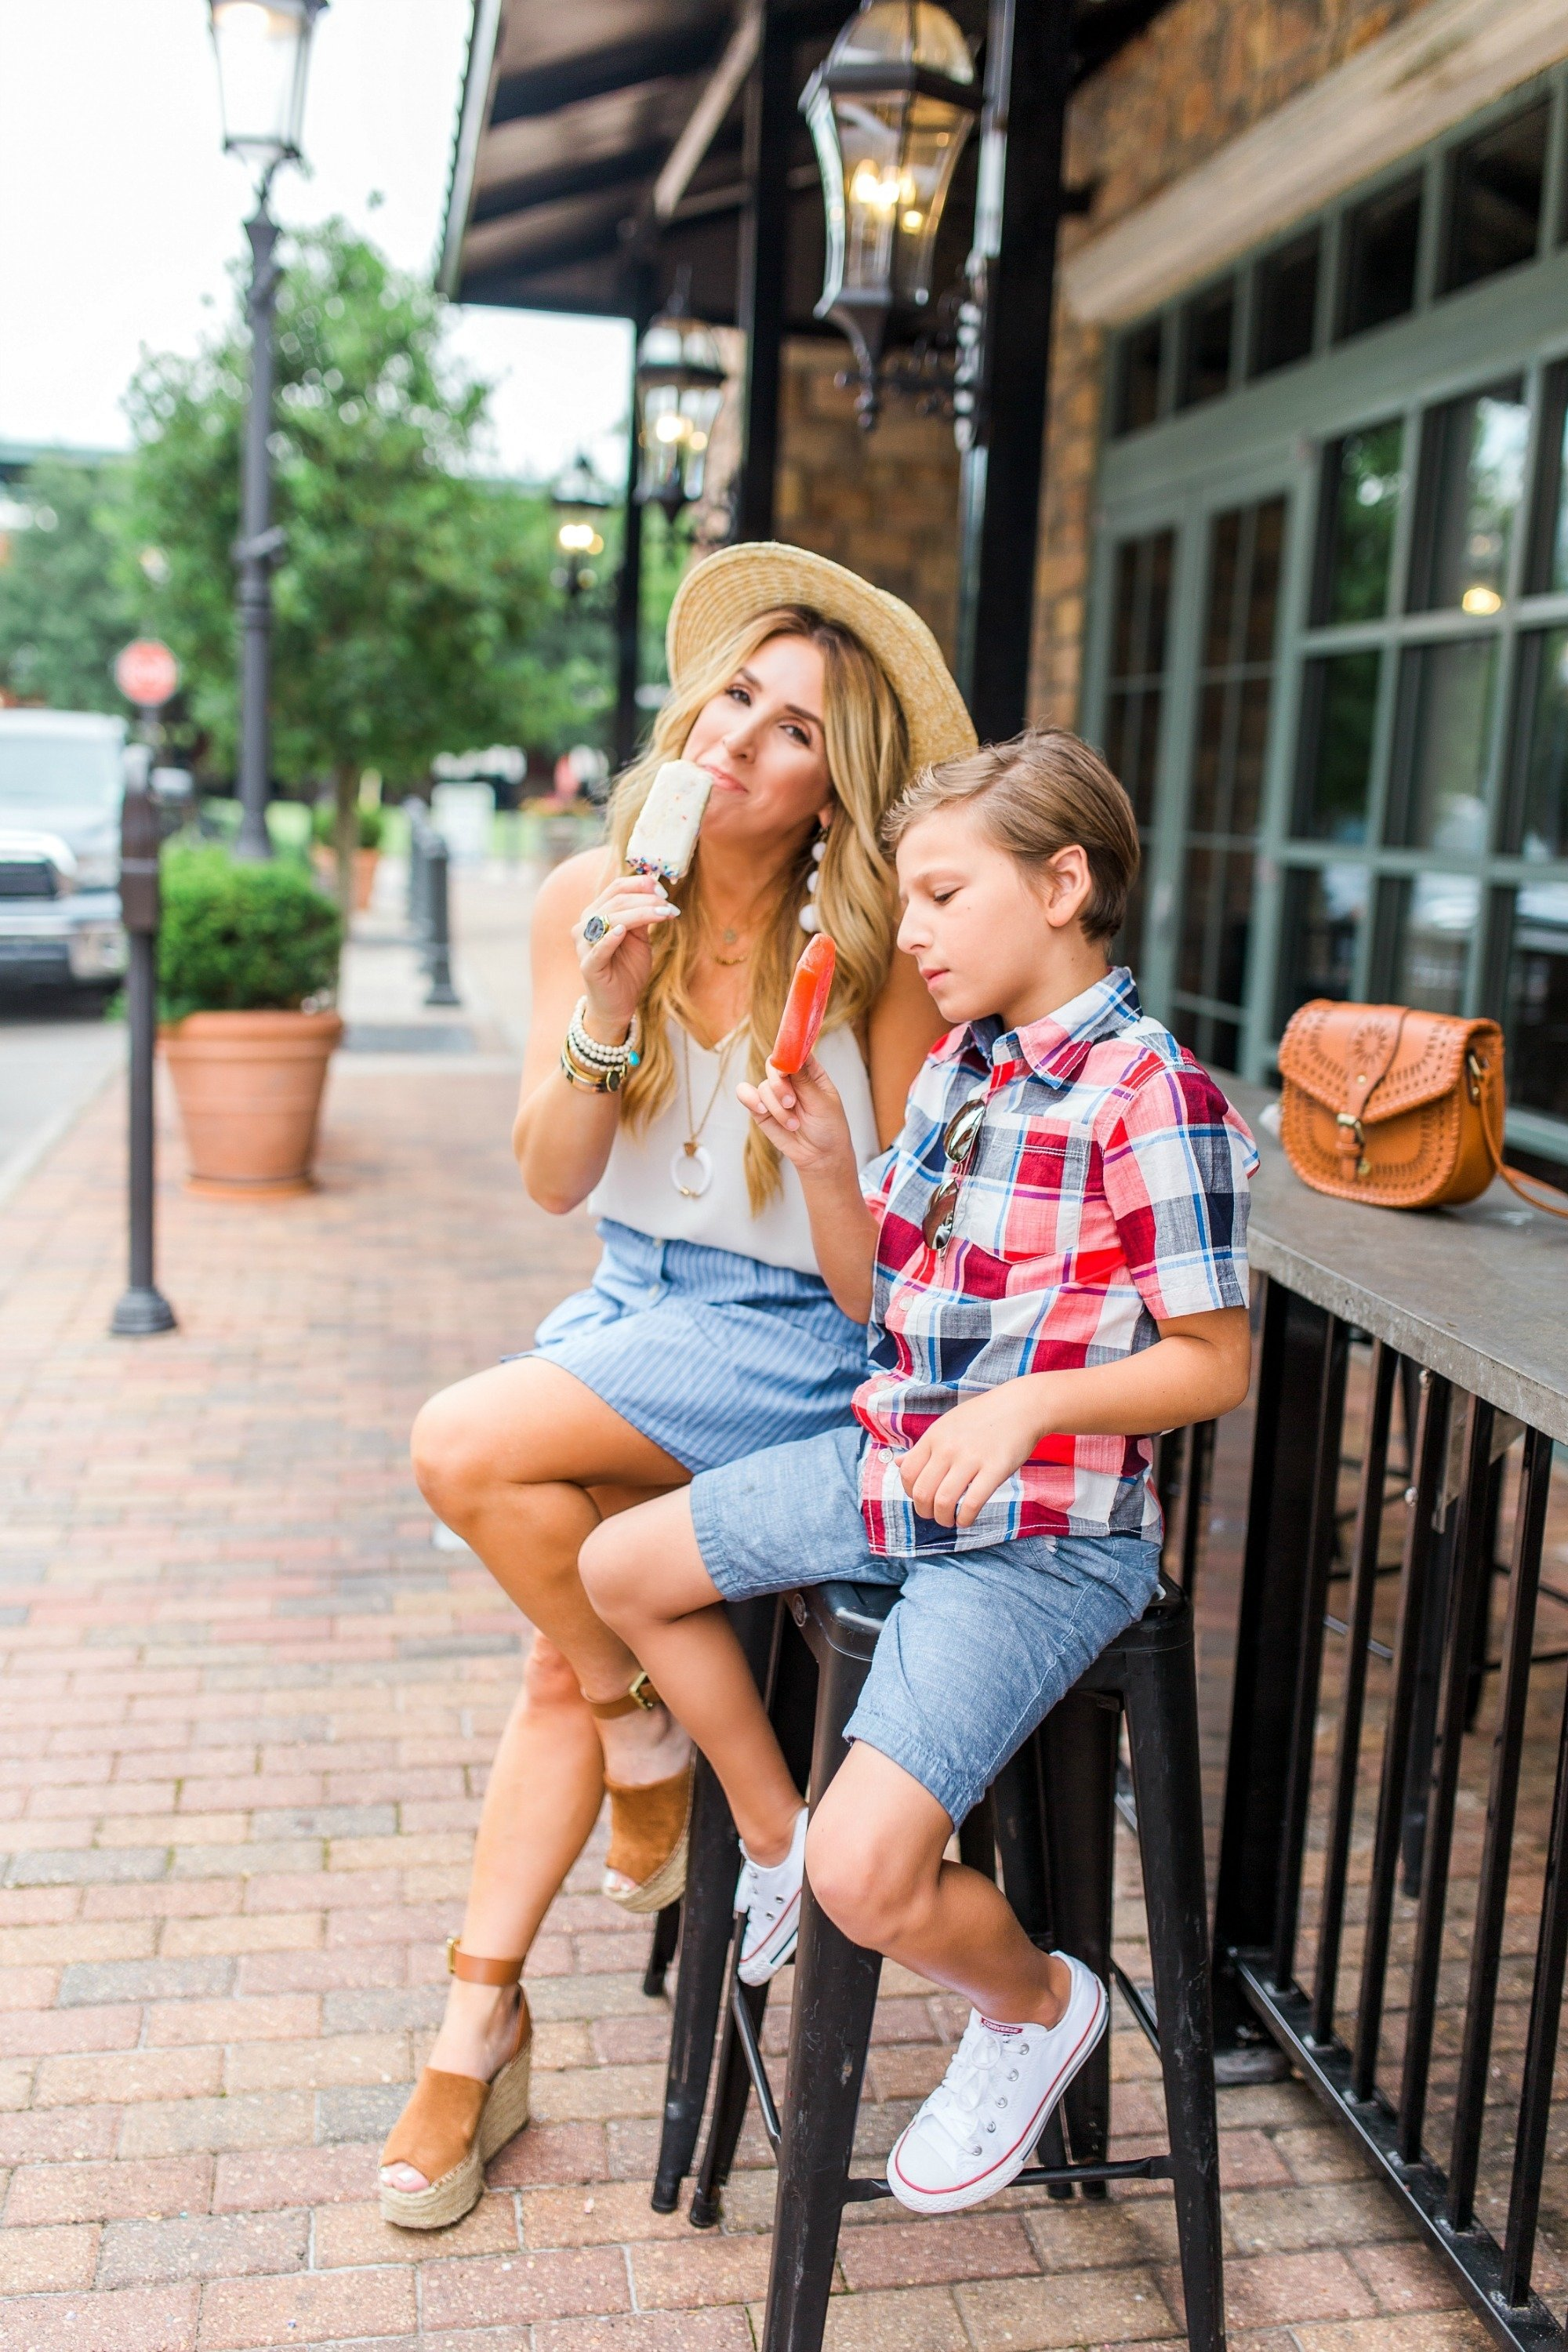 10 Fashionable Mother And Son Picture Ideas mom son date night and bonding time january hart blog 2020